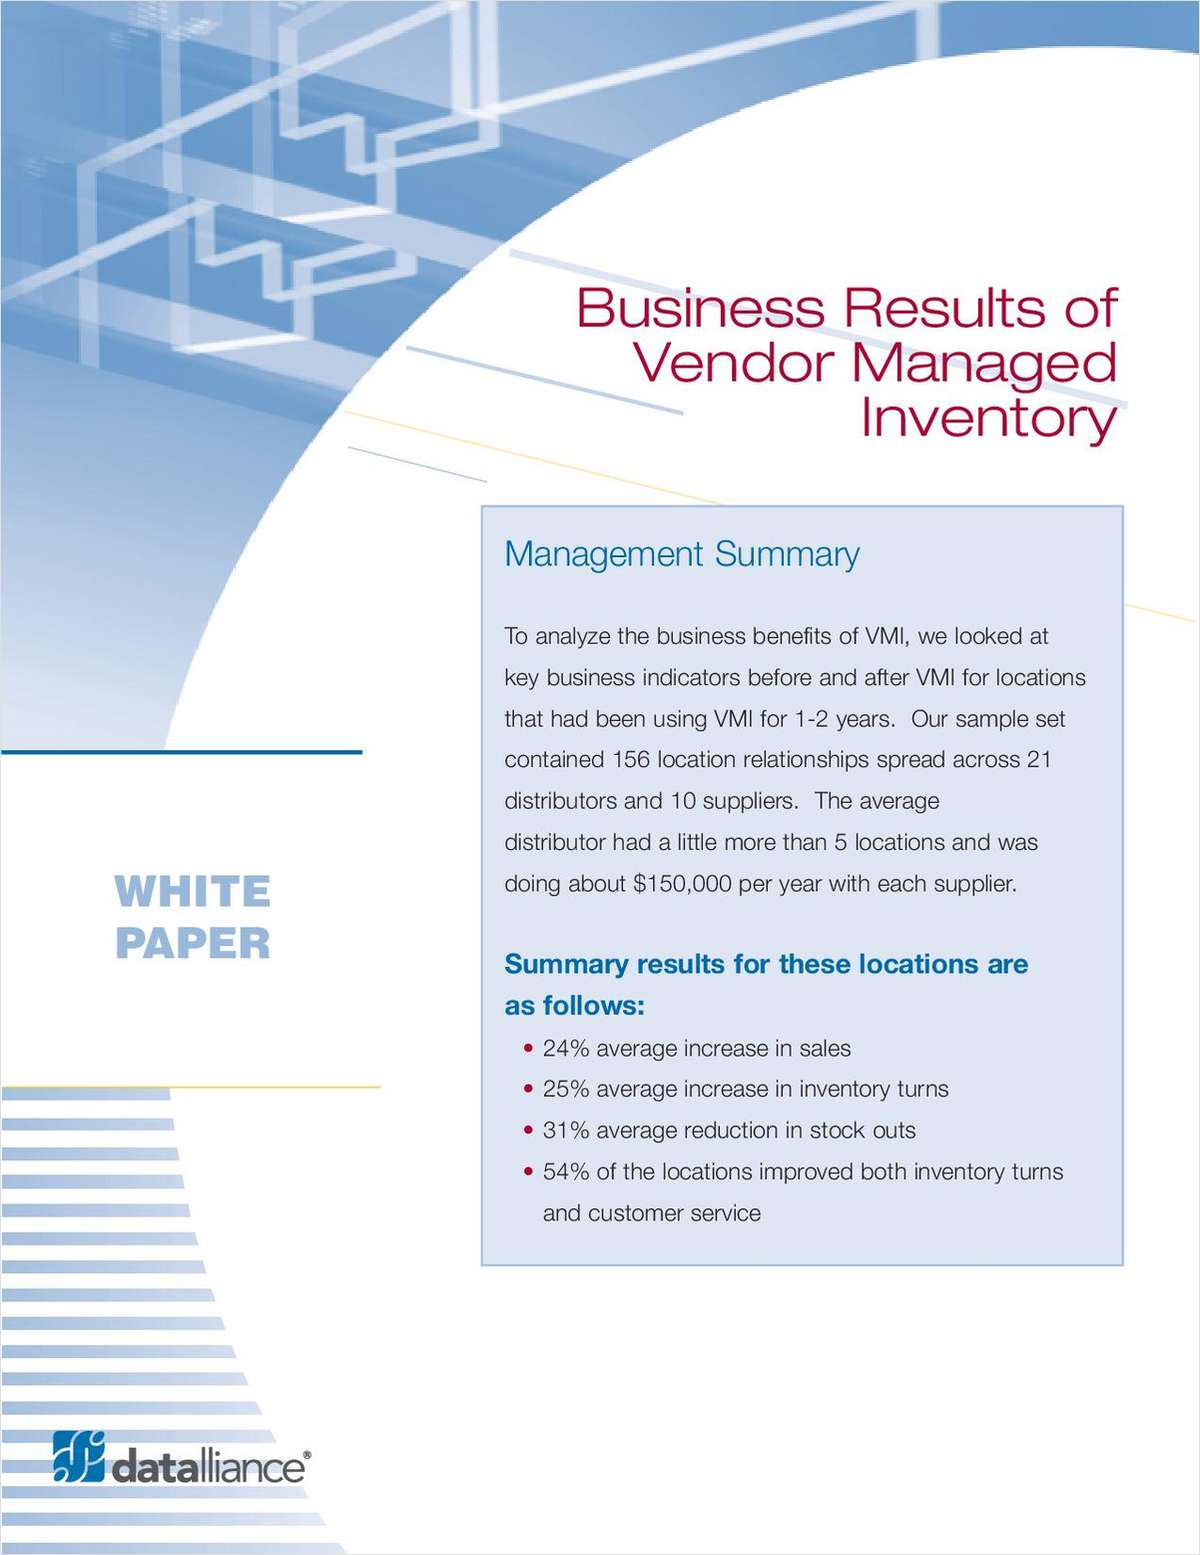 Business Results of Vendor Managed Inventory